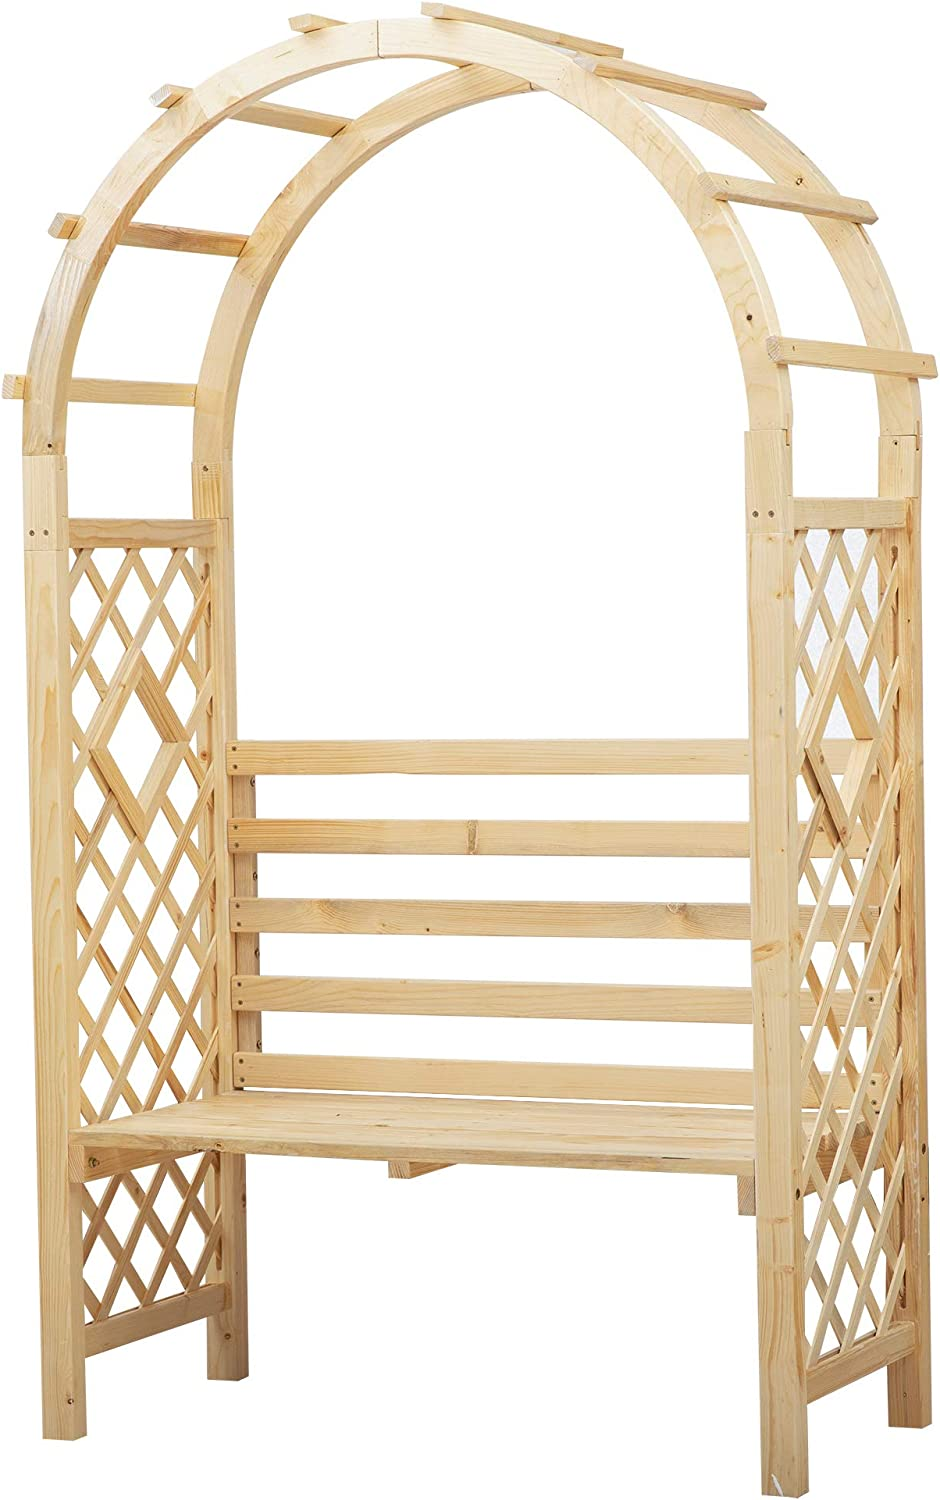 Outsunny Wood Garden Arch with Bench Pergola Trellis for Vines/Climbing Plants, Perfect for The Backyard & Outdoor Space